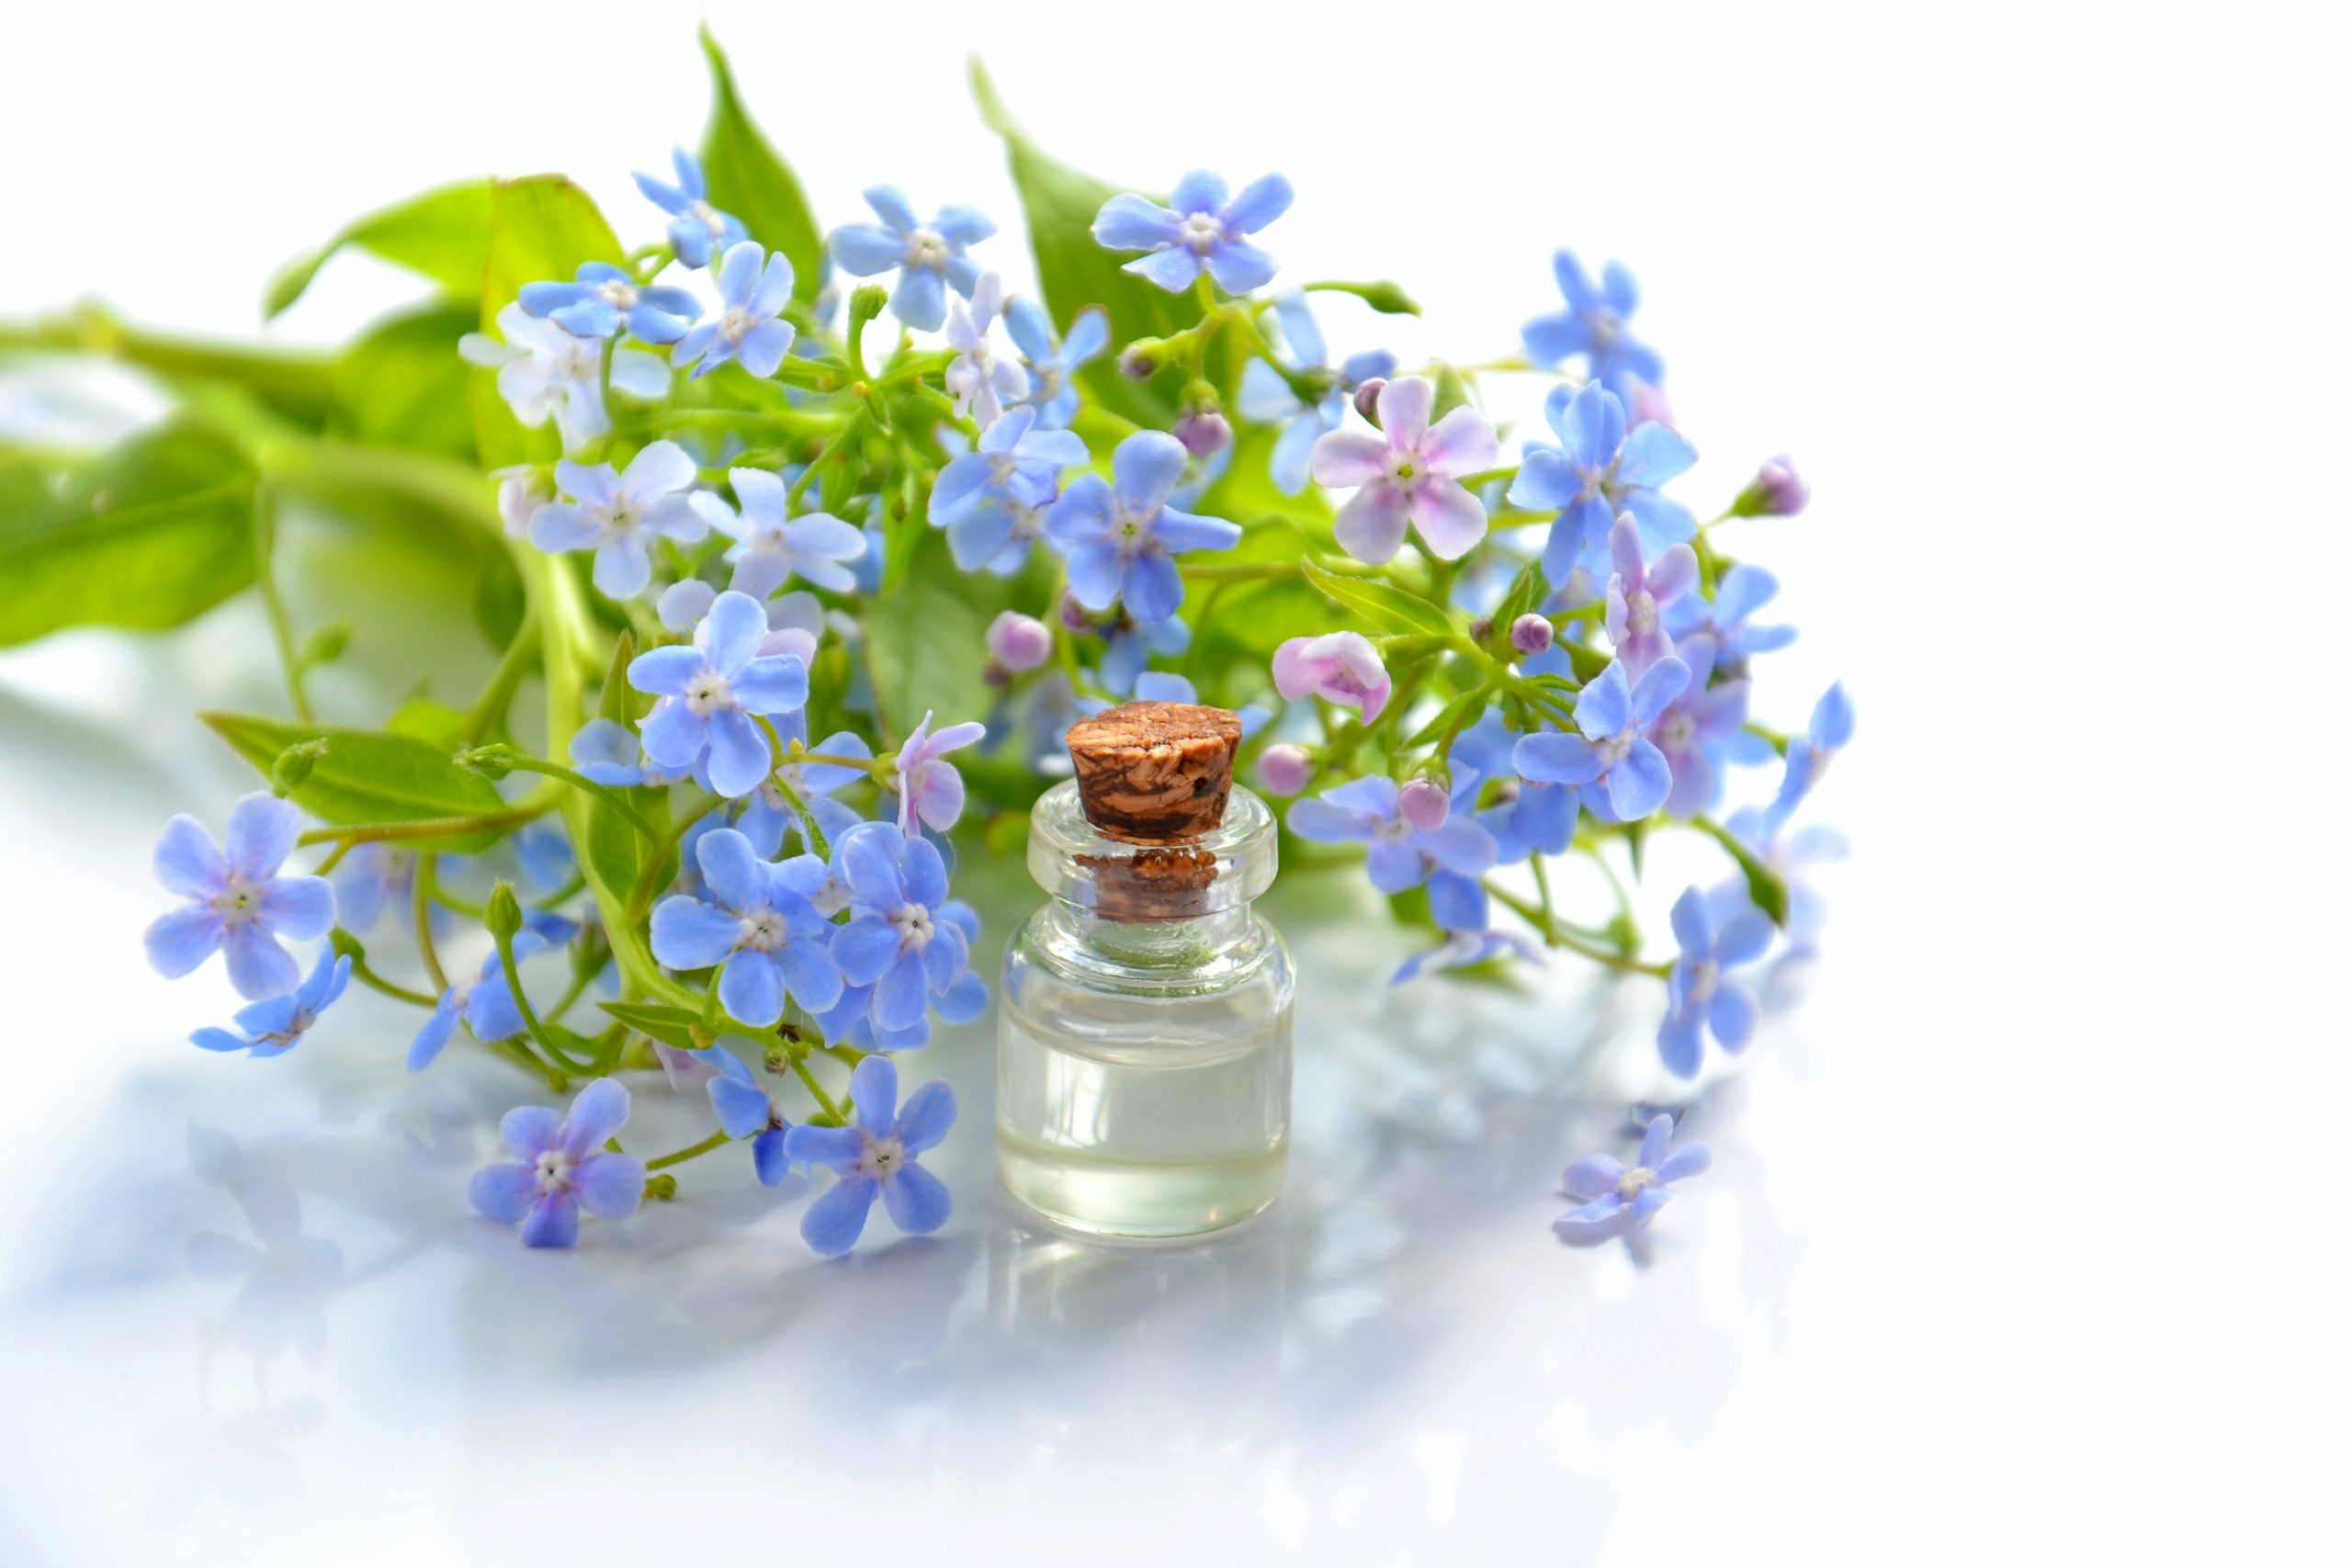 Ten Essential Oils with Medicinal Benefits